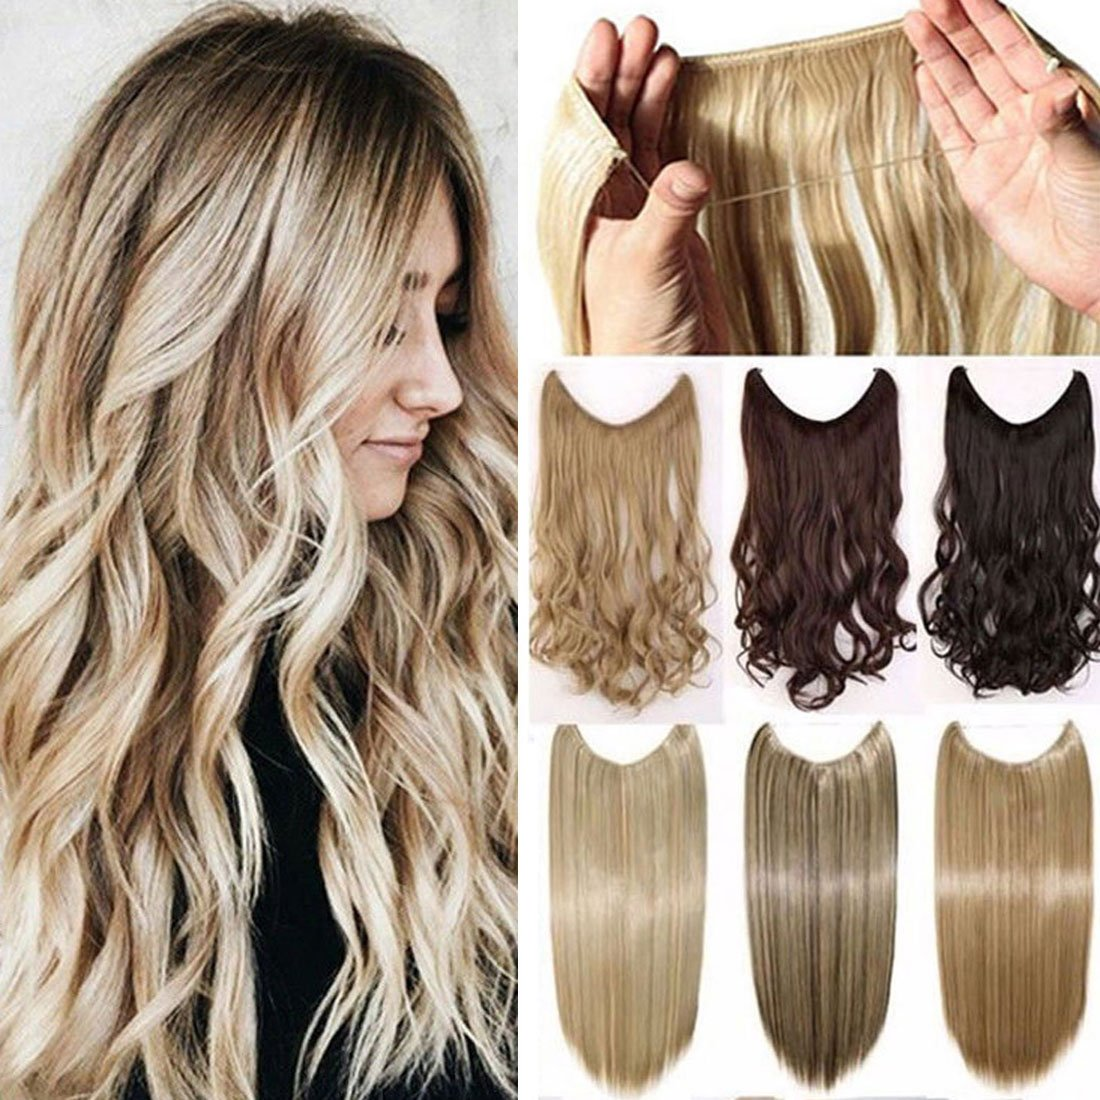 Secret Wire in Hair Extensions Straight Curly Wavy Hair Extension Long Hairpiece Blonde Brown Black Color For Women 20 Curly - Medium brown Rich Choices